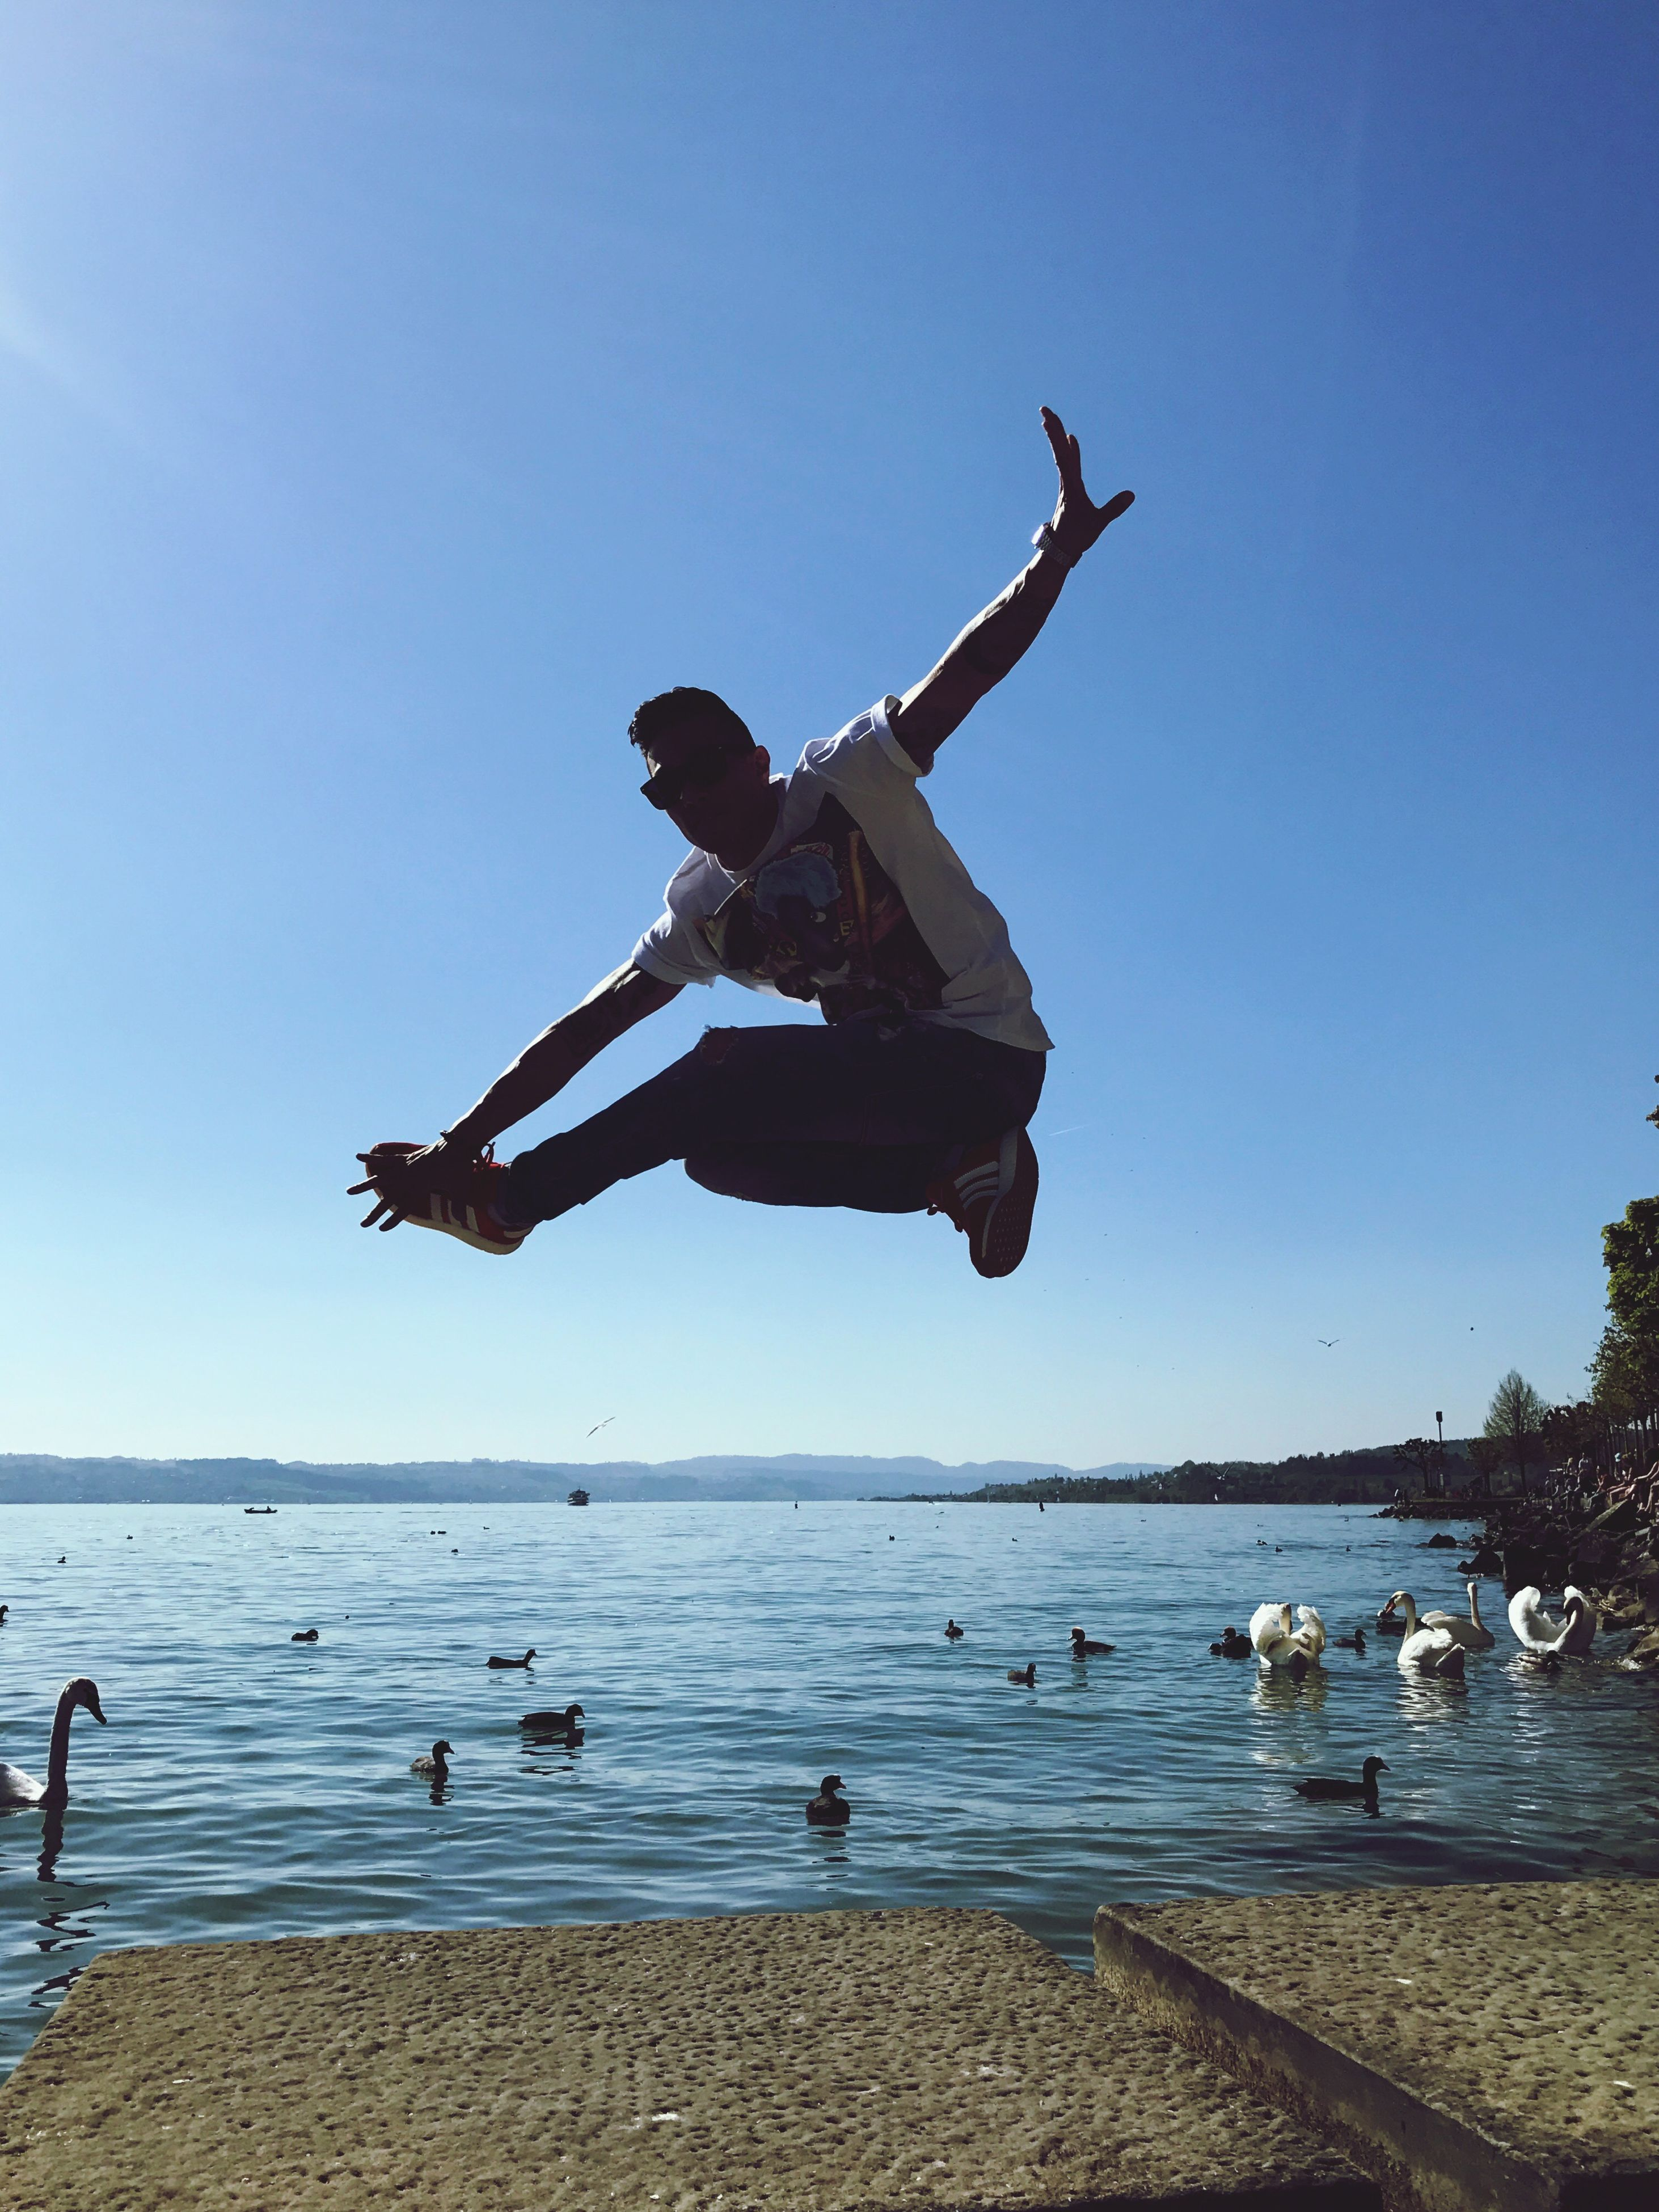 mid-air, jumping, beach, full length, sea, young adult, motion, men, real people, outdoors, clear sky, fun, sky, happiness, water, one person, day, sand, horizon over water, adult, cheerful, people, one man only, only men, adults only